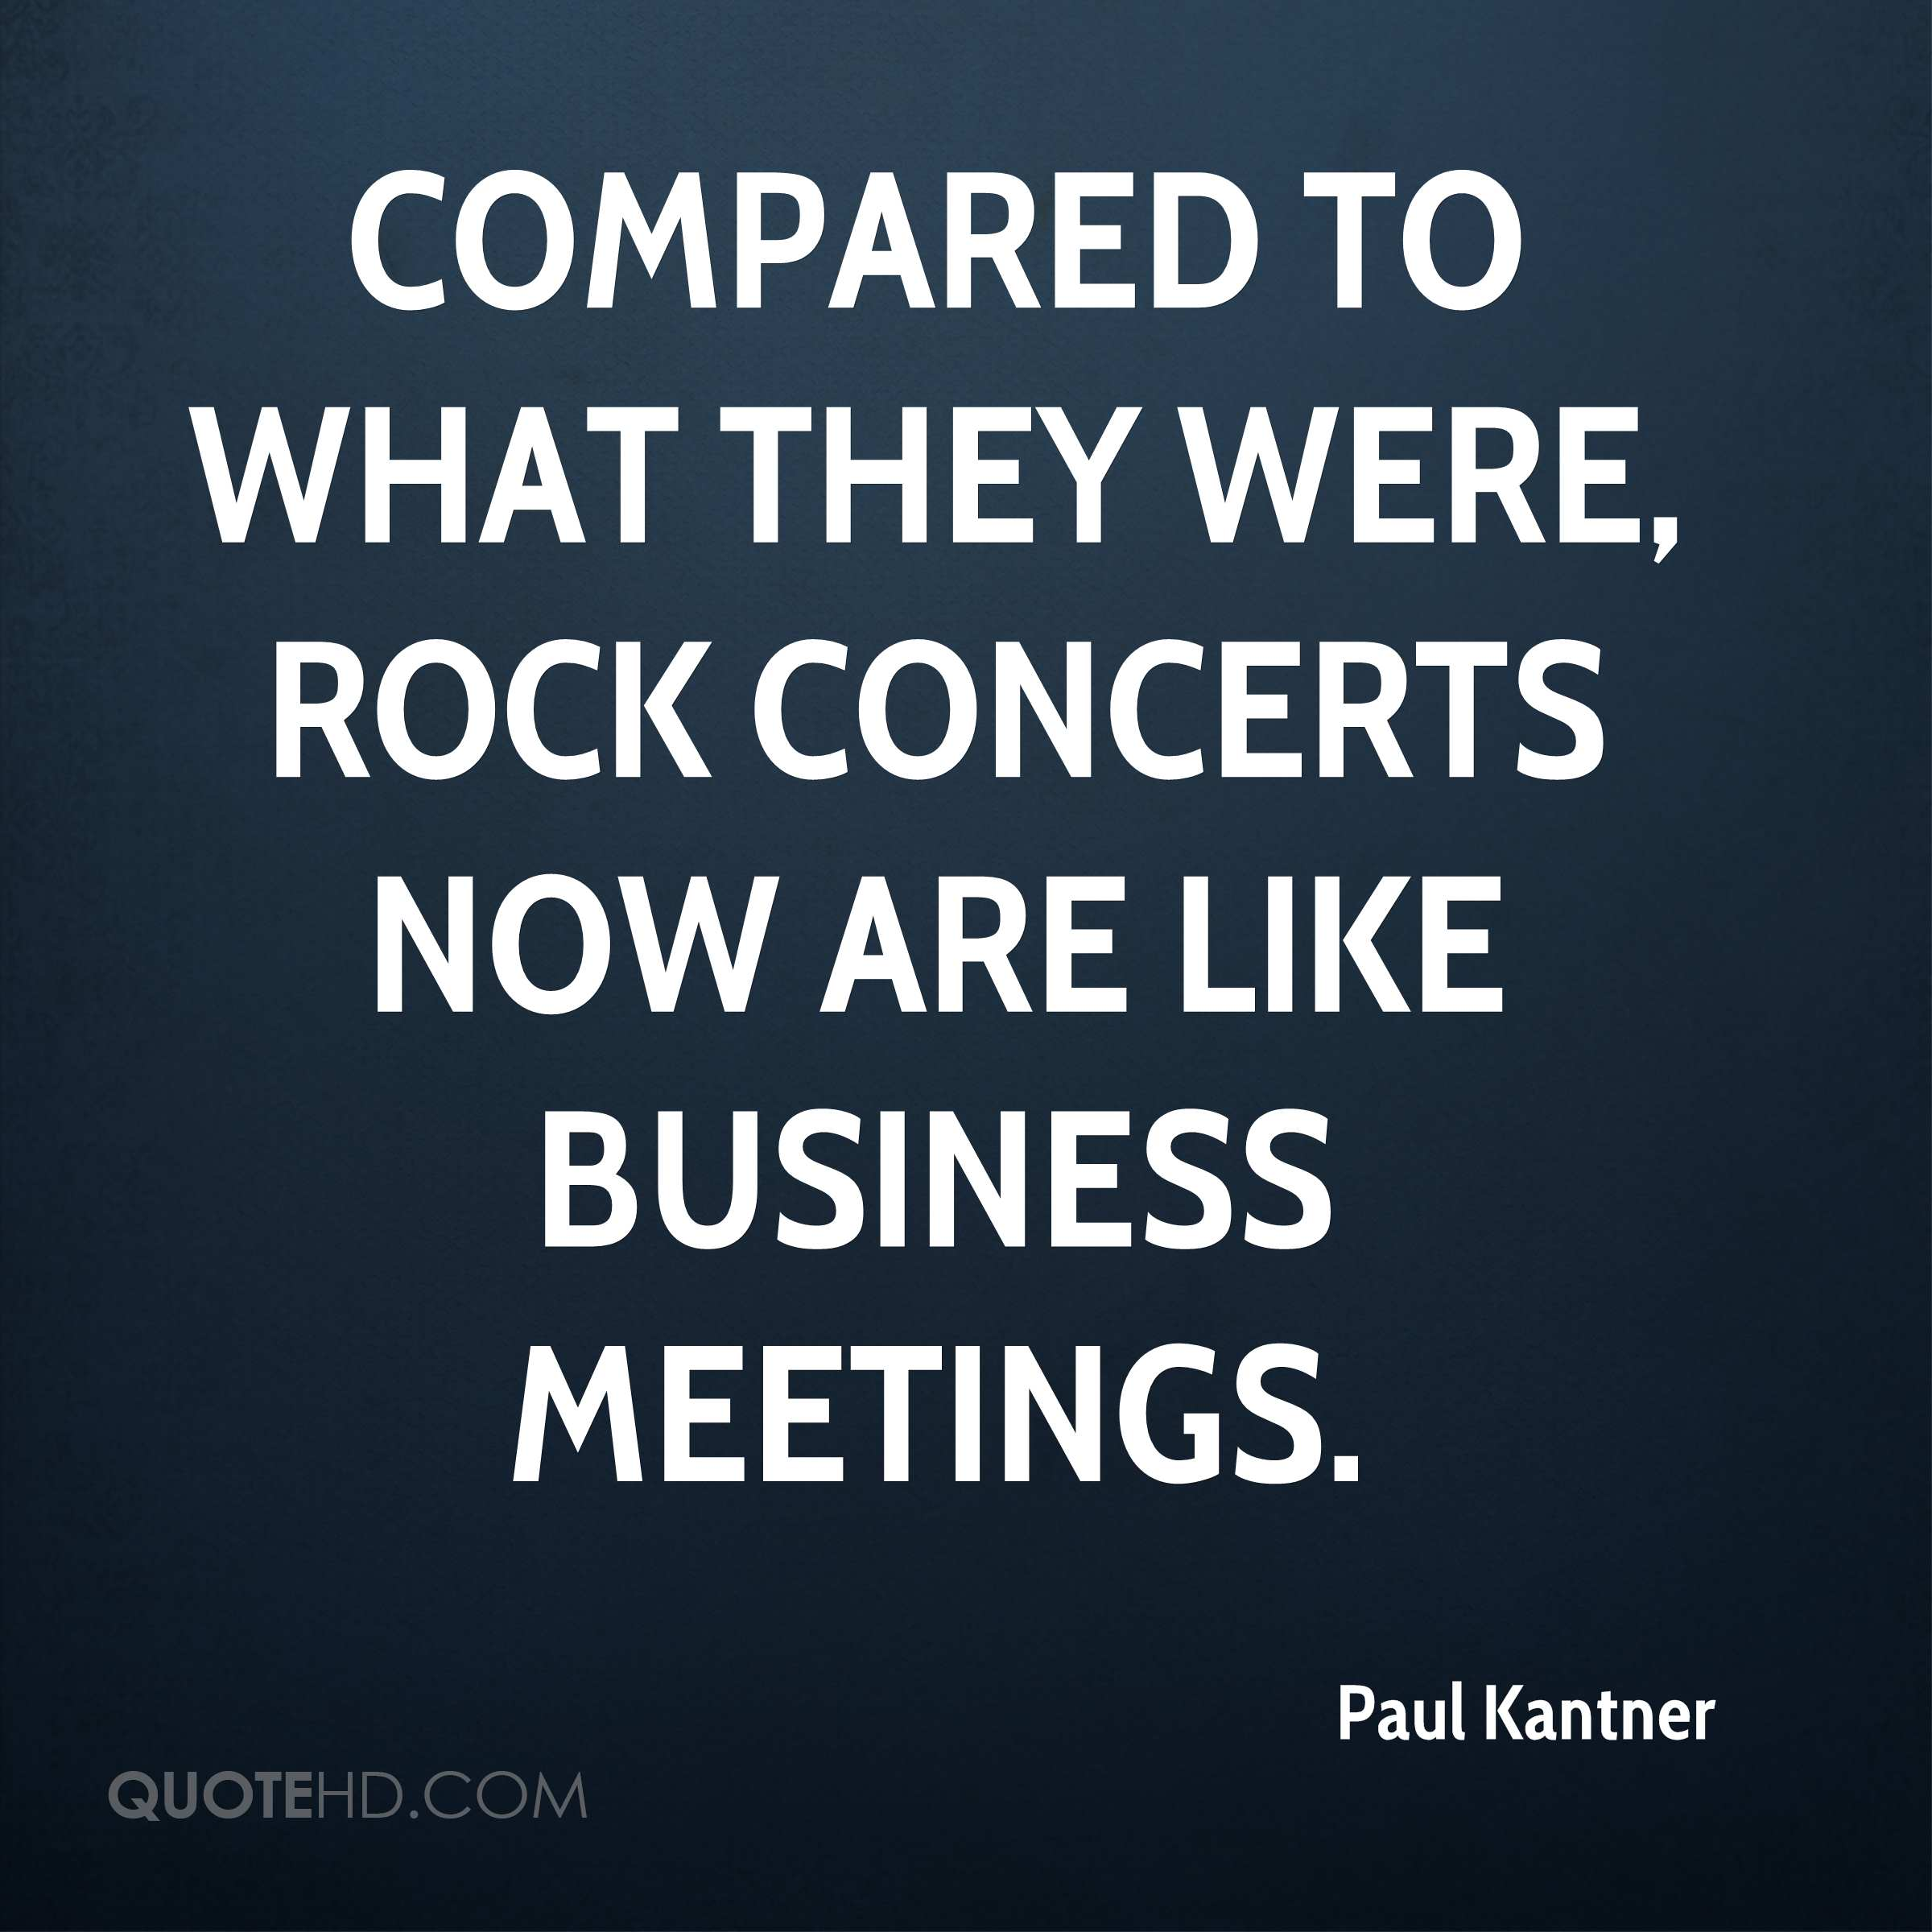 Paul Kantner Quotes | QuoteHD